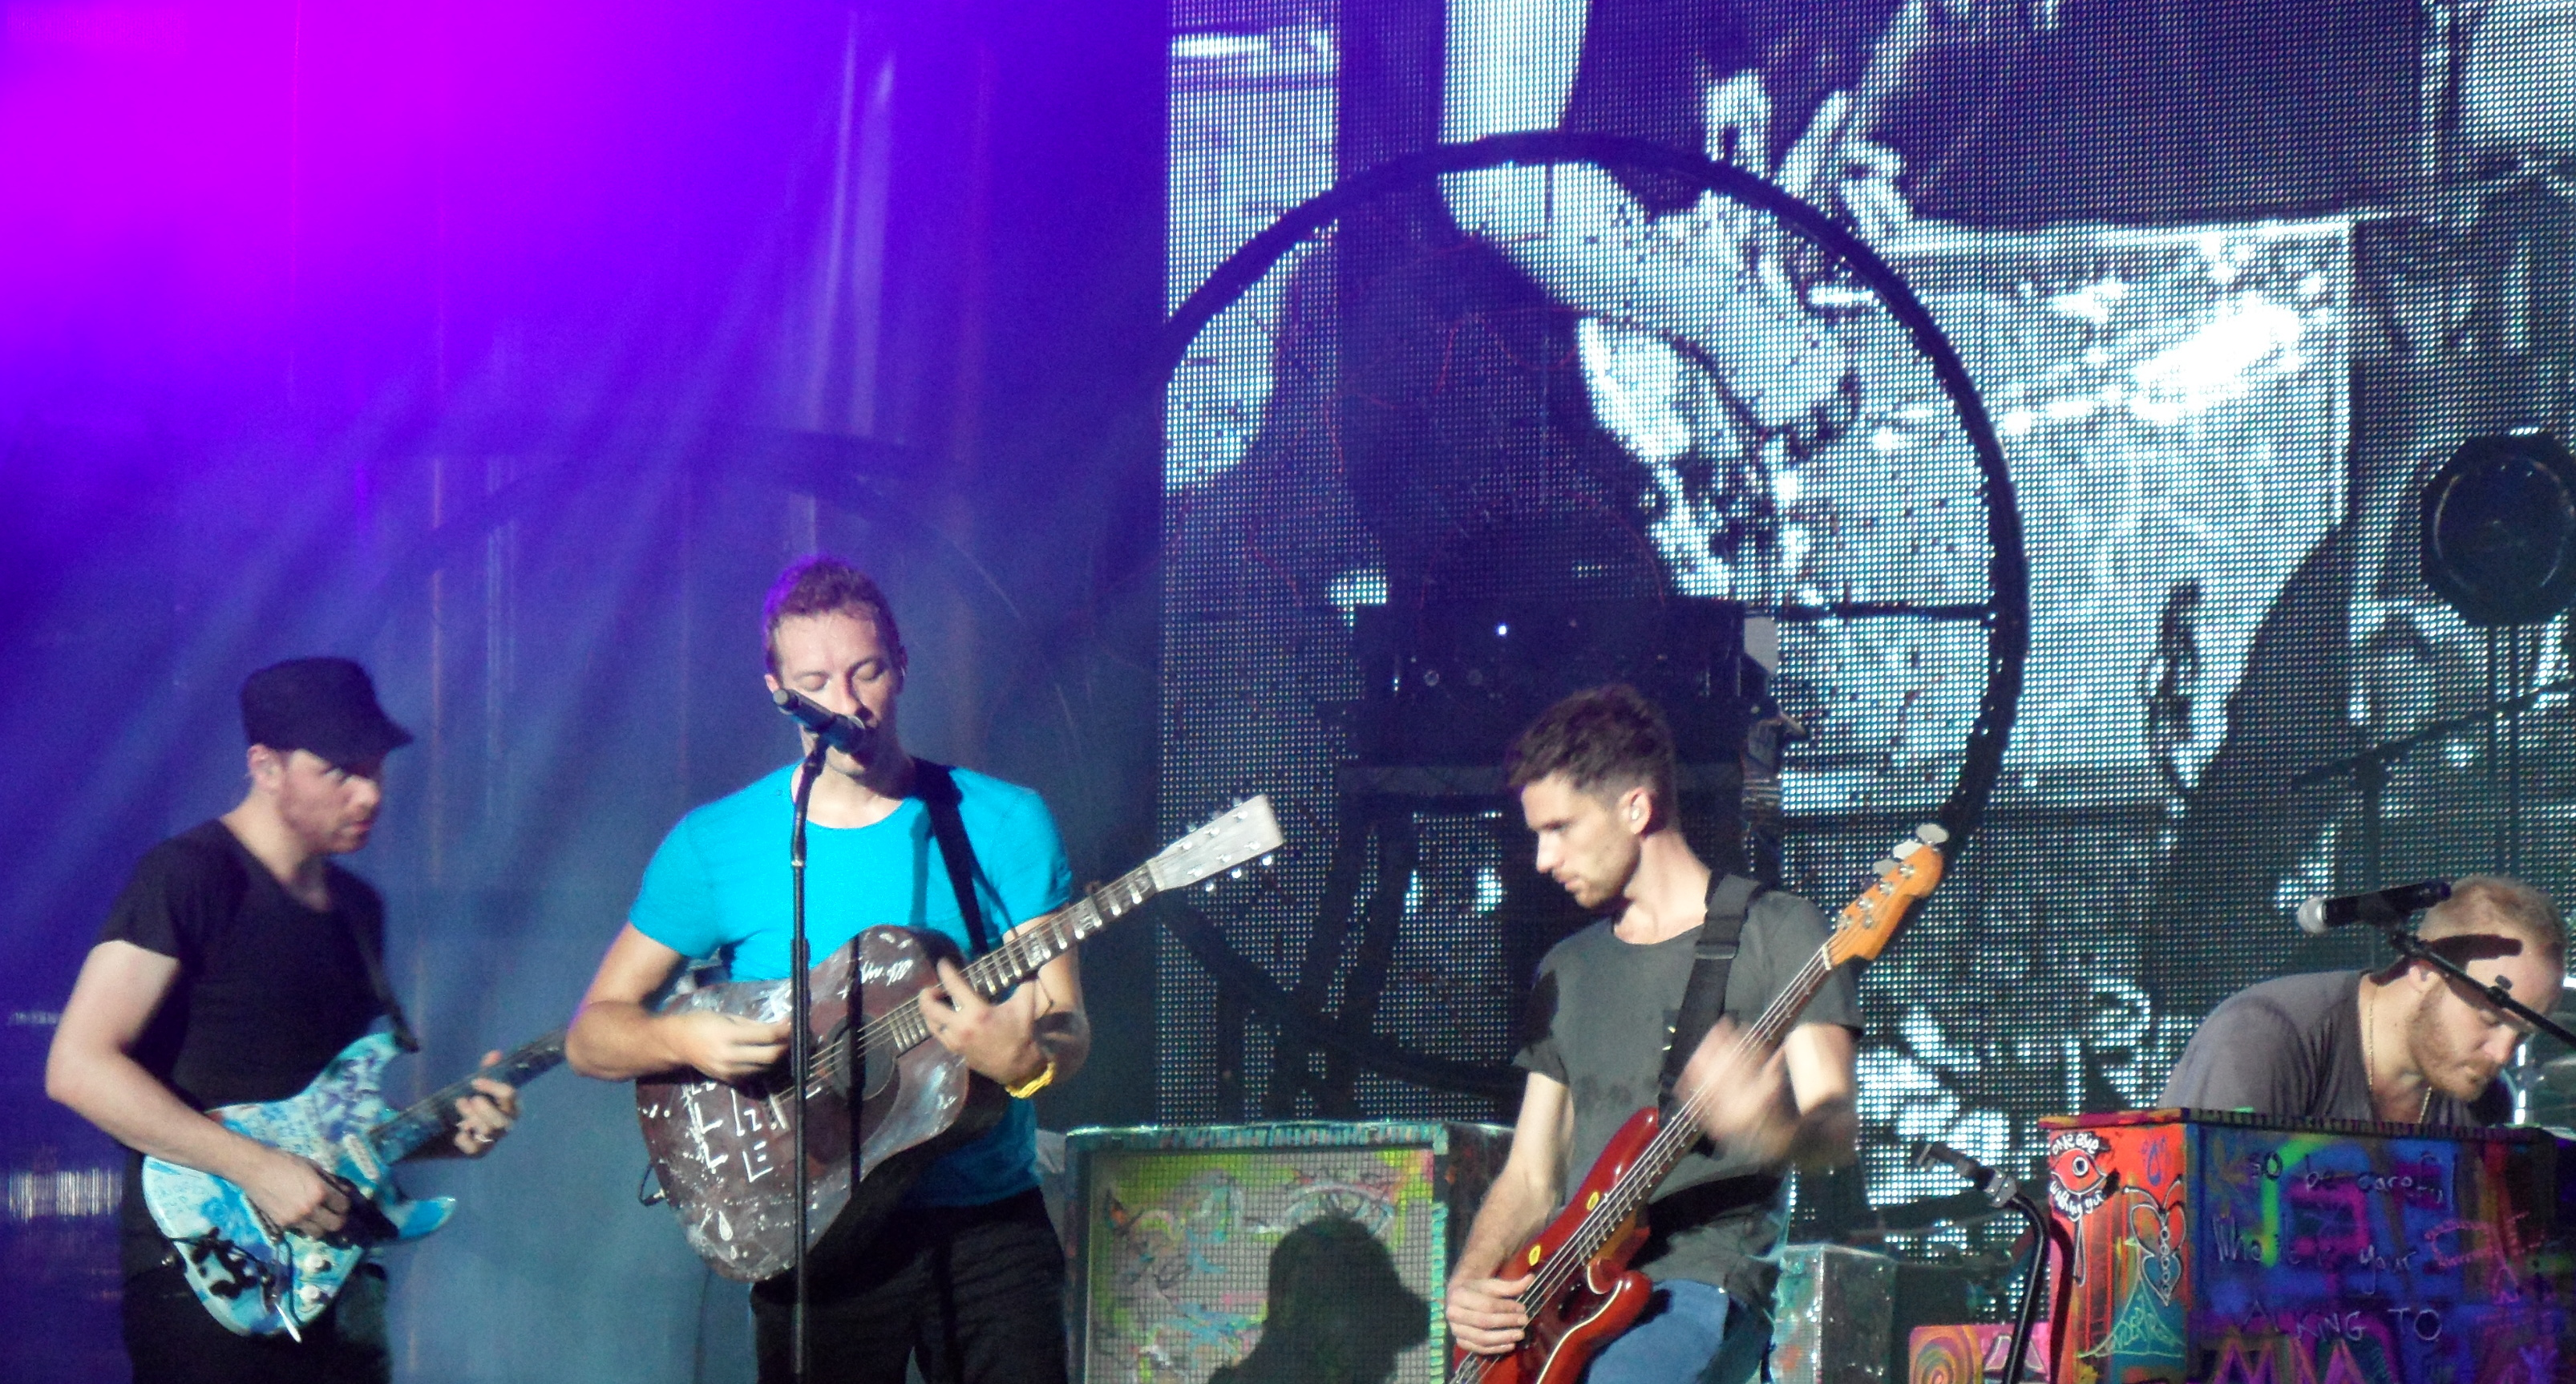 Coldplay playing at MuchMusic in Toronto, September 2011